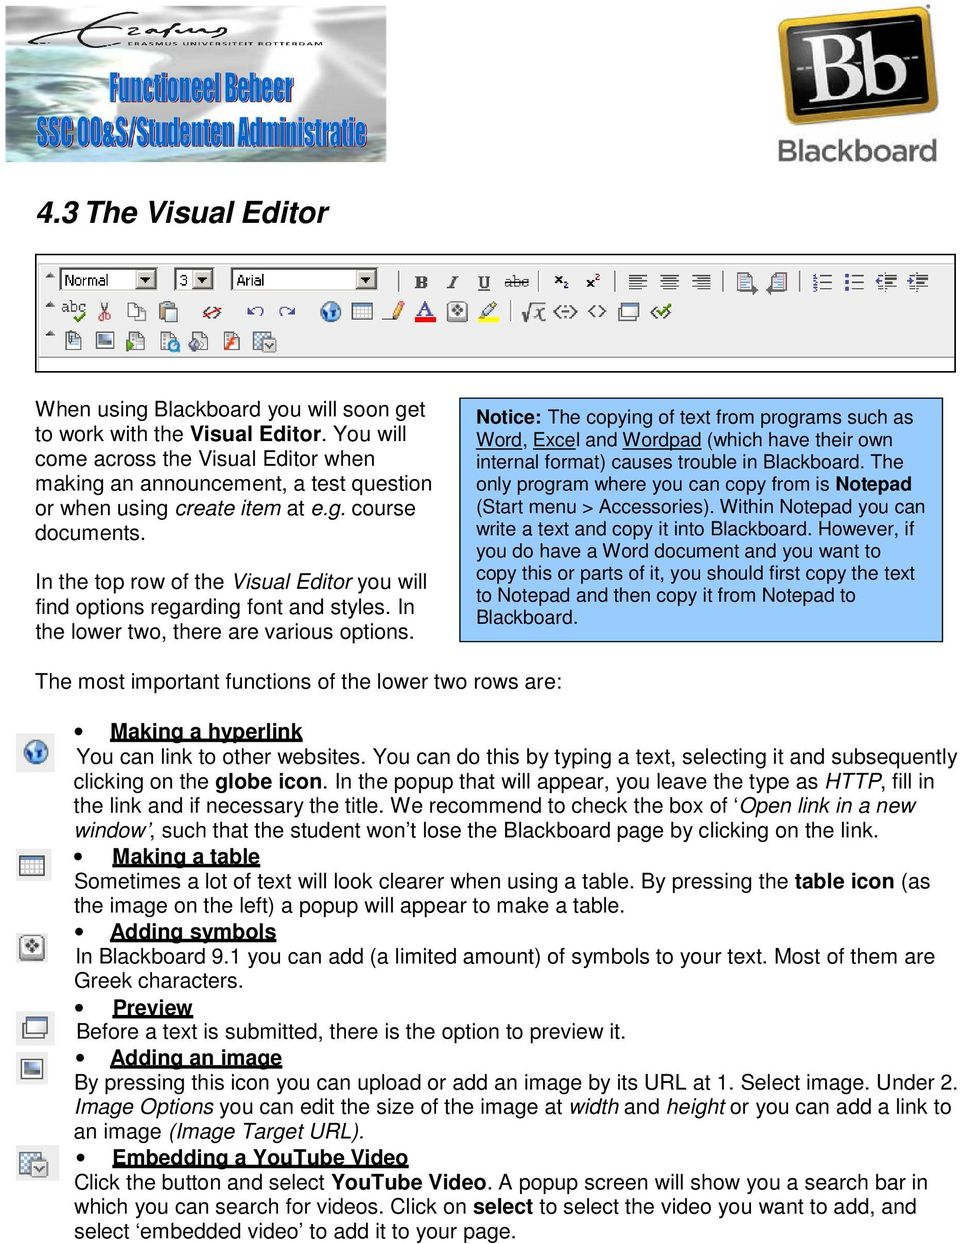 In the top row of the Visual Editor you will find options regarding font and styles. In the lower two, there are various options.